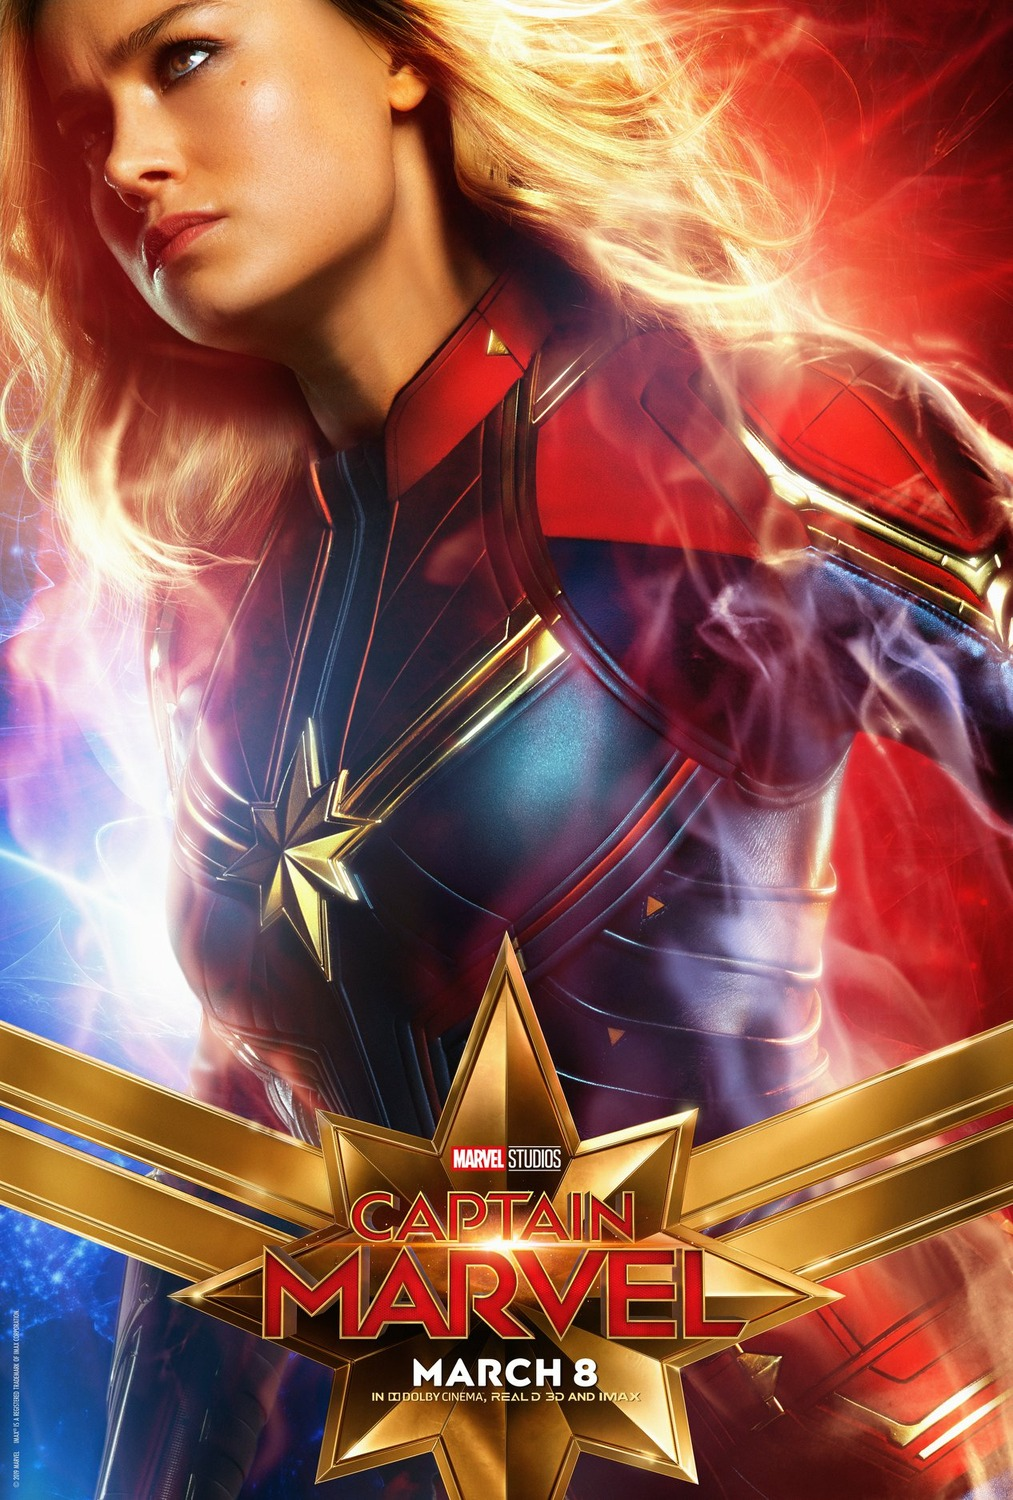 captain marvel movie (2019) – character posters : teaser trailer